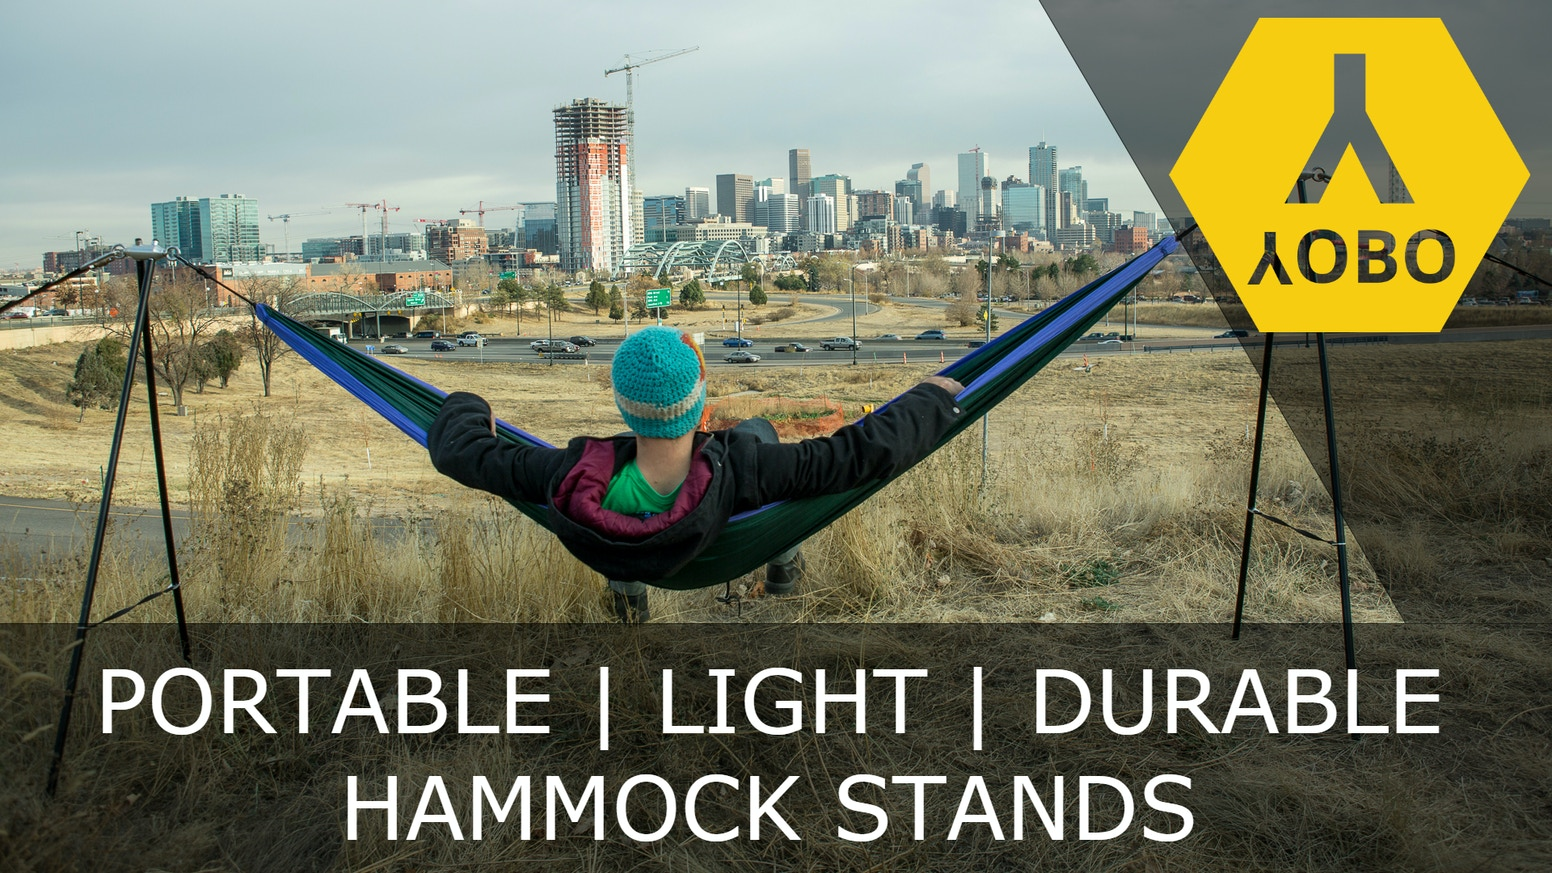 YOBO hammock stands are lightweight, portable, and utilize the highest quality materials to ensure outstanding durability.